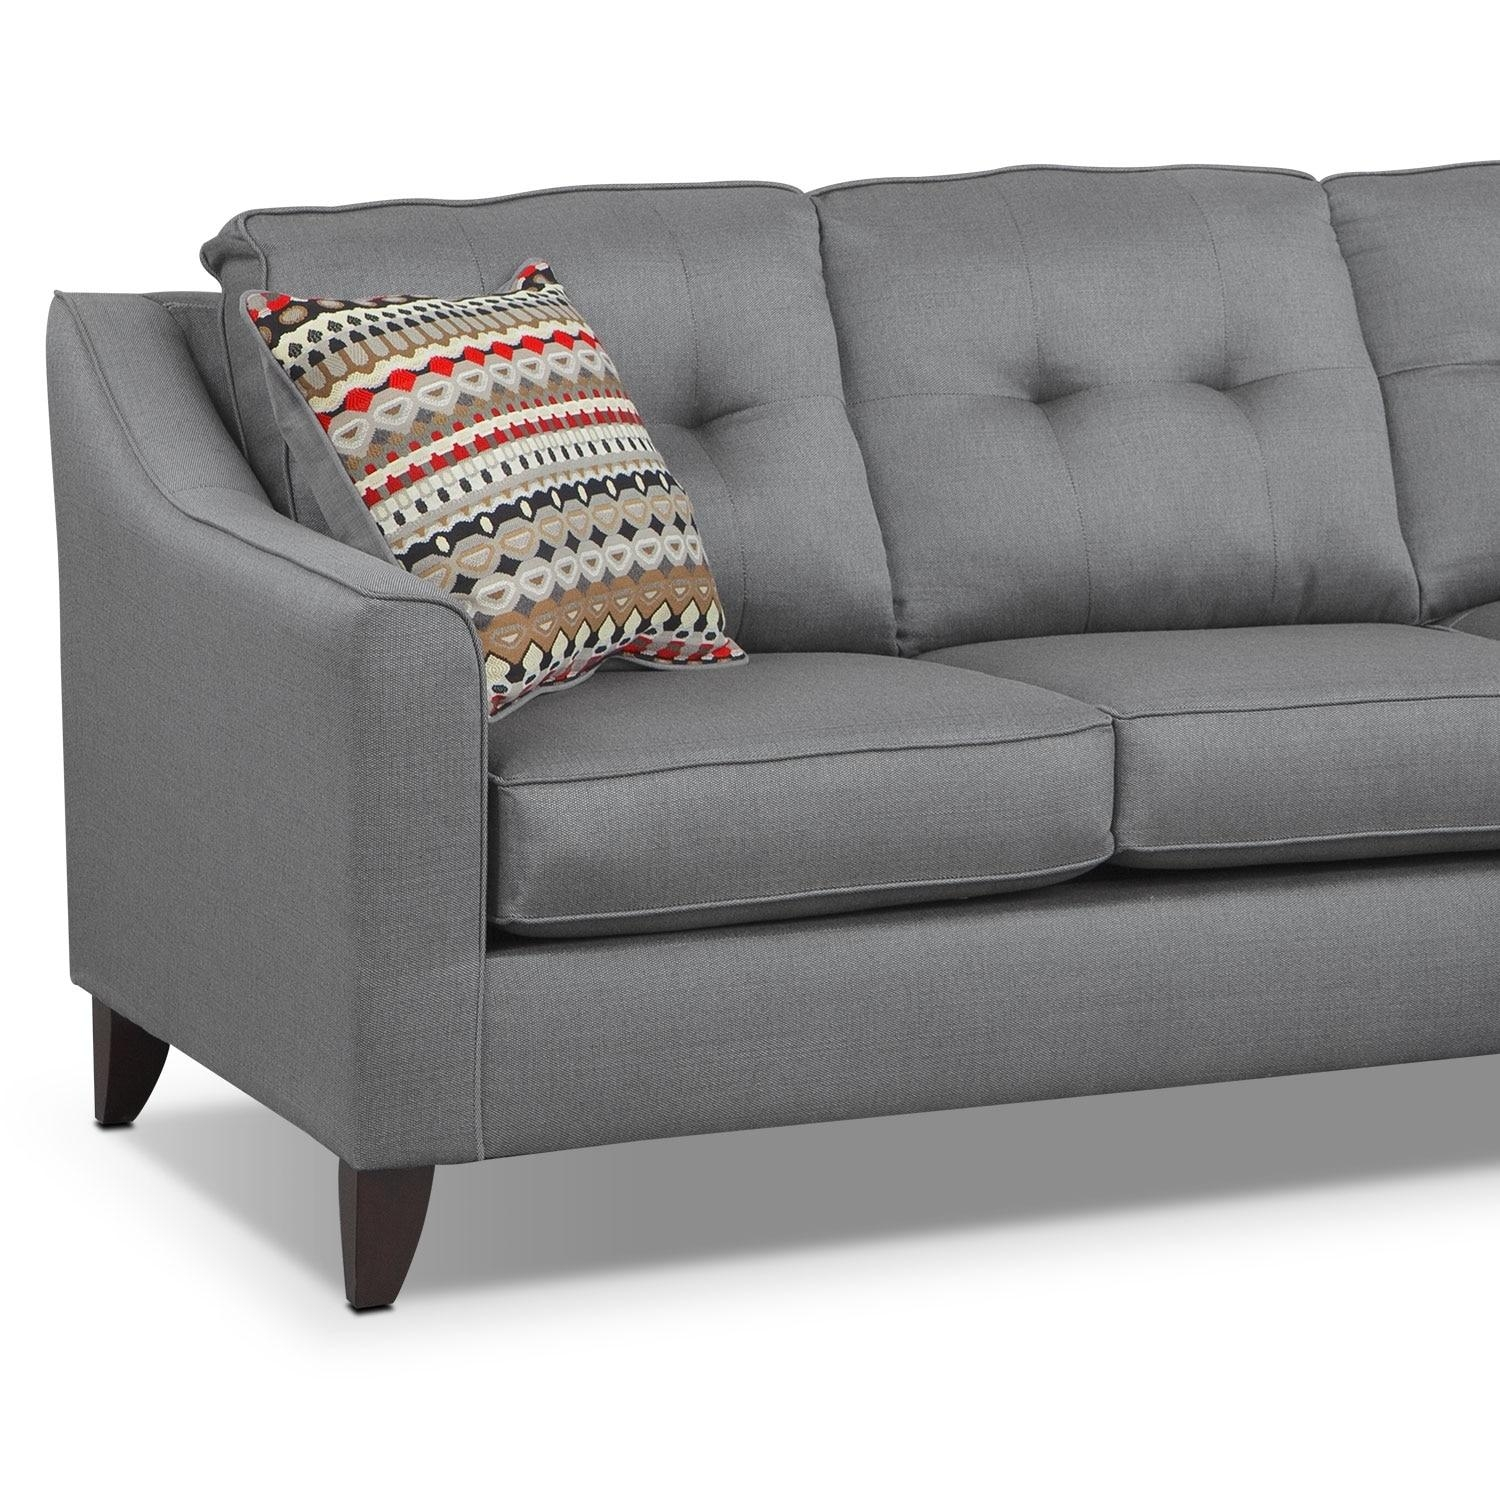 Marco Chaise Sofa – Gray | American Signature Furniture Intended For Chaise Sofas (Image 13 of 20)